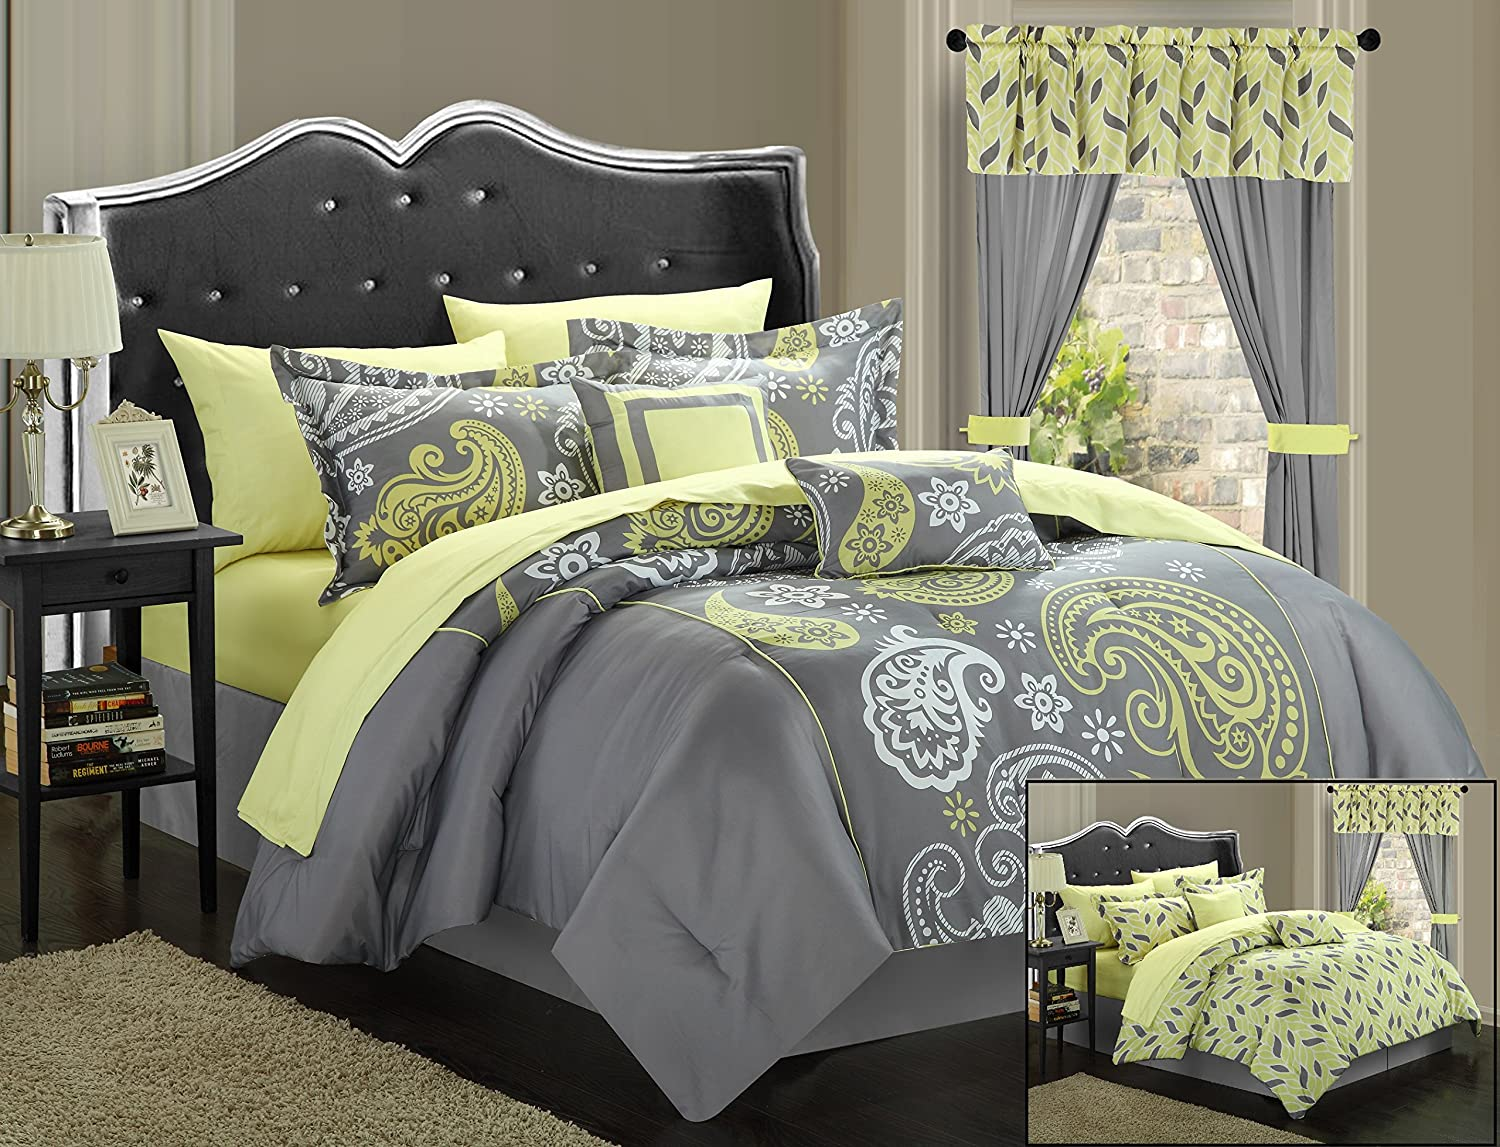 Chic Home 20-Piece Olivia Paisley Print Reversible Comforter Set, Queen, Grey/Yellow